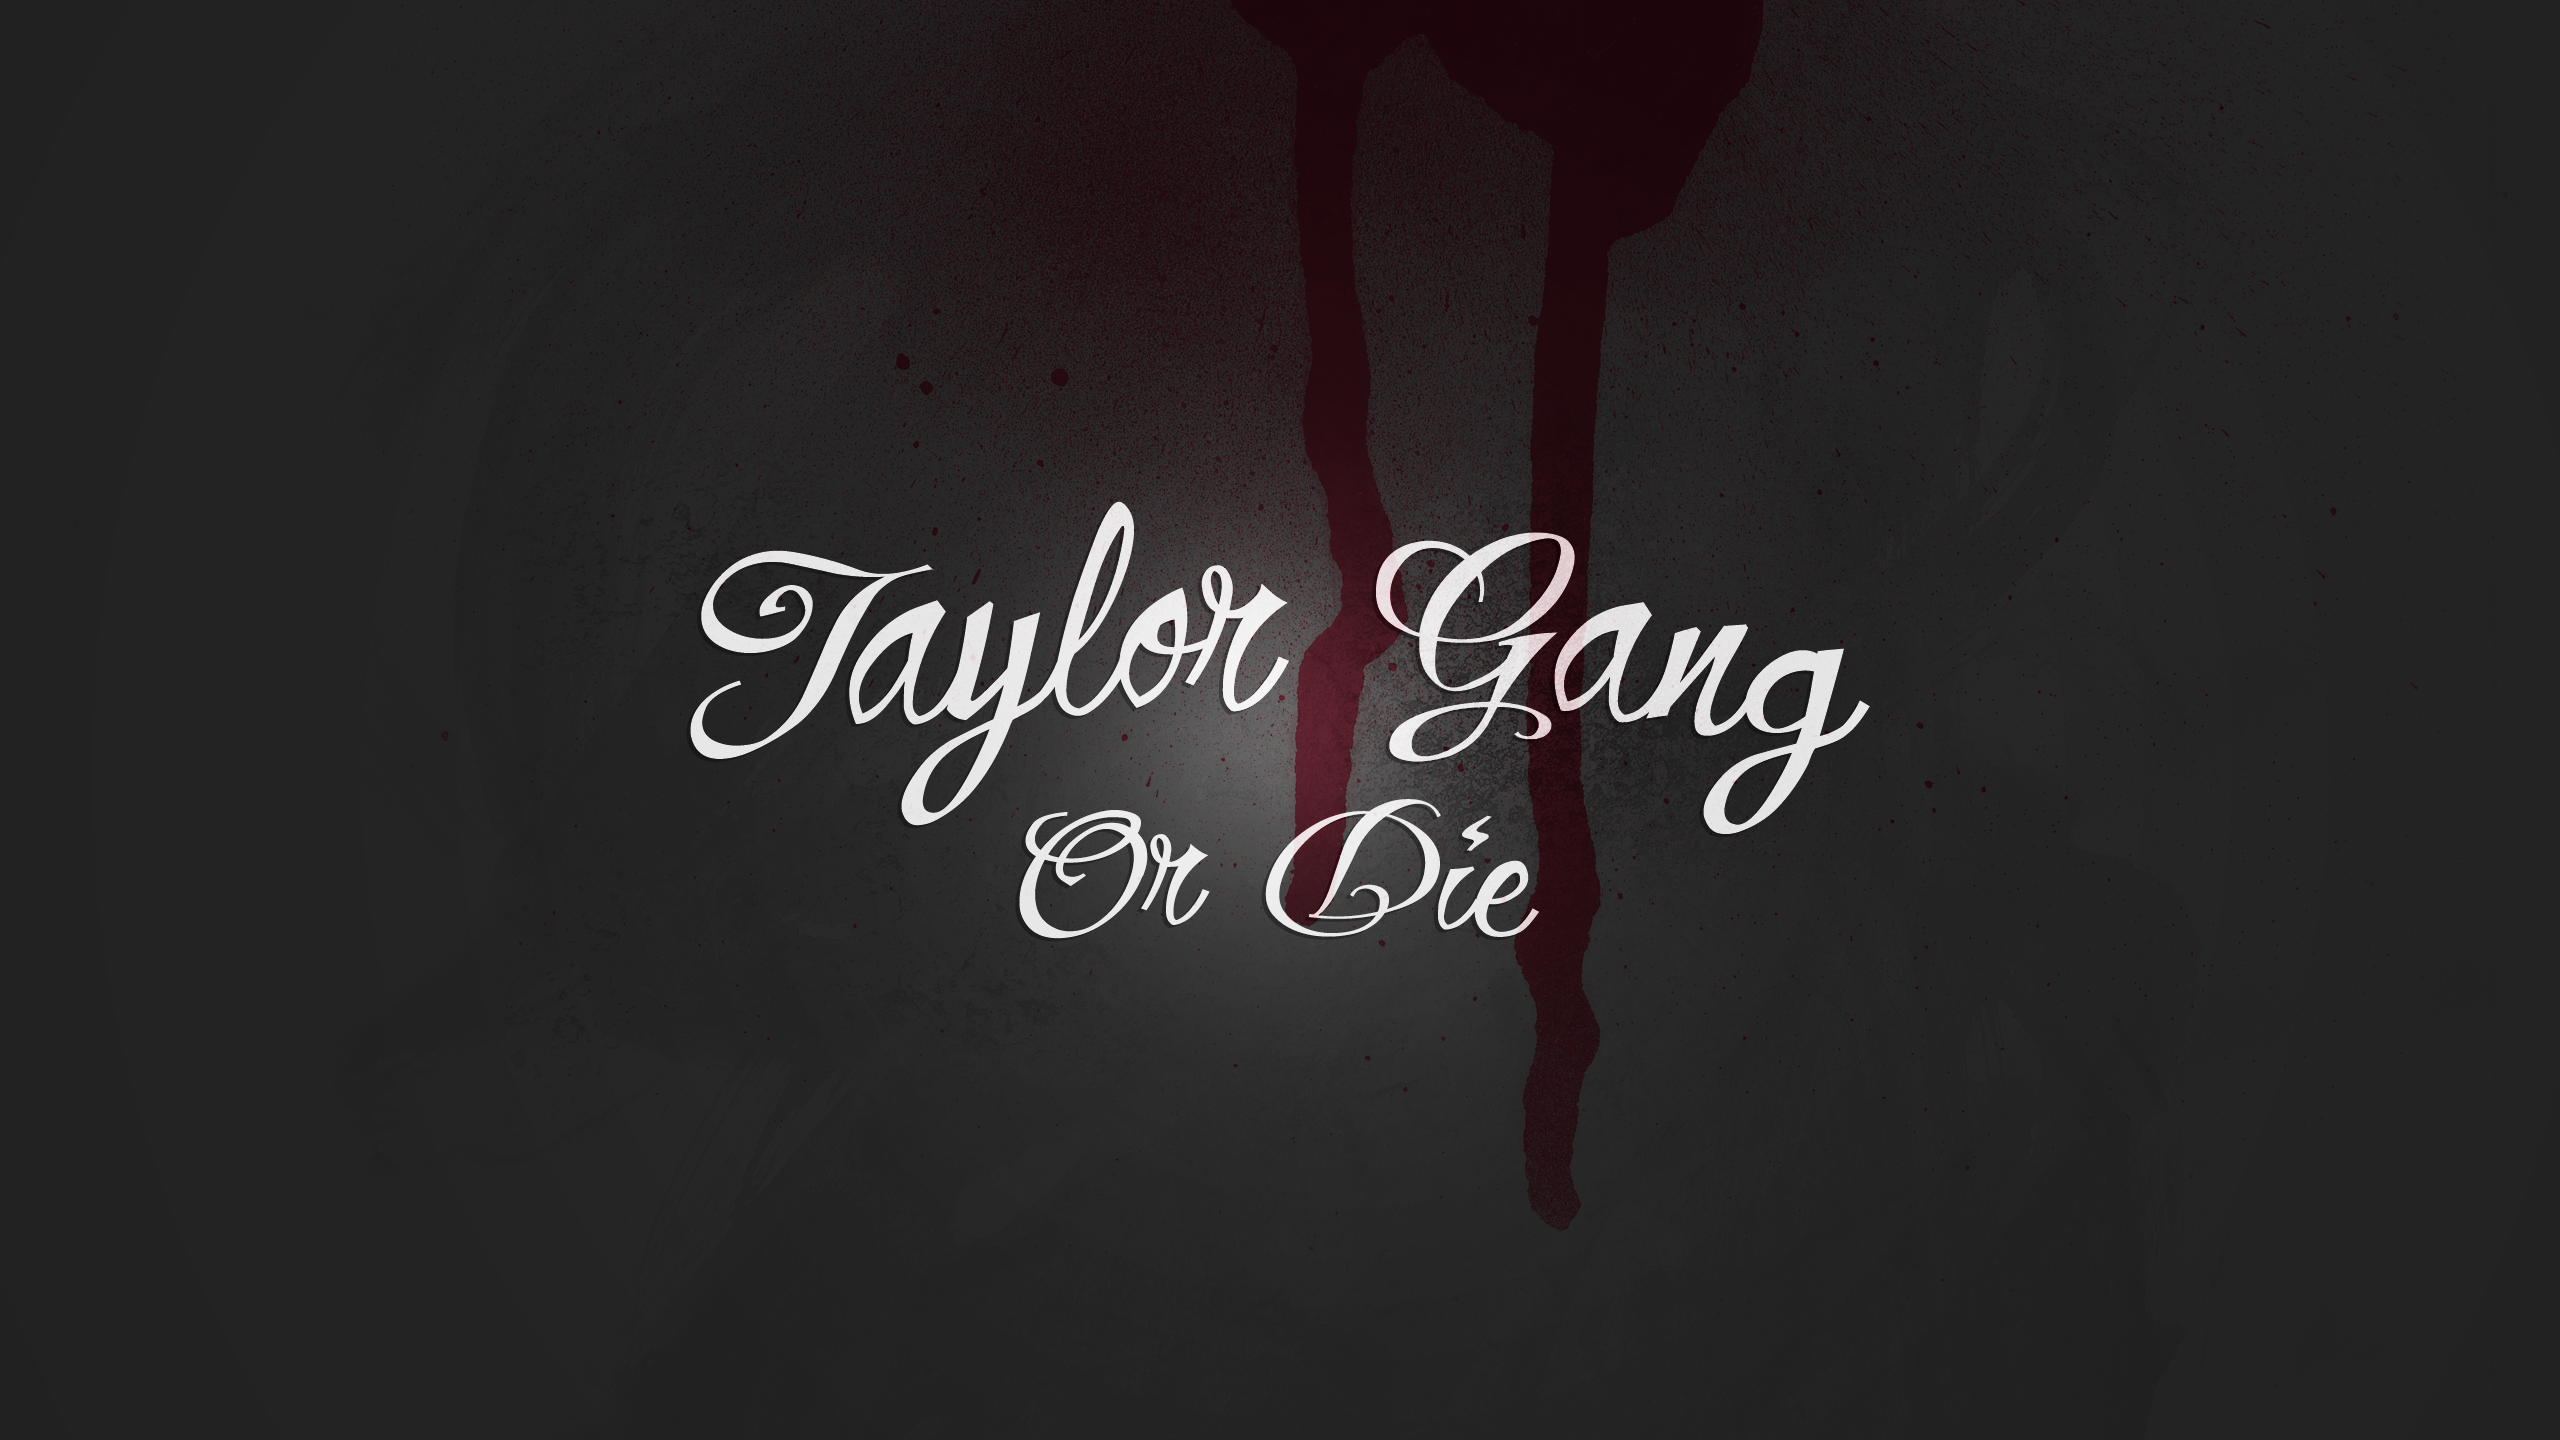 Taylor Gang Entertainment - Official Site